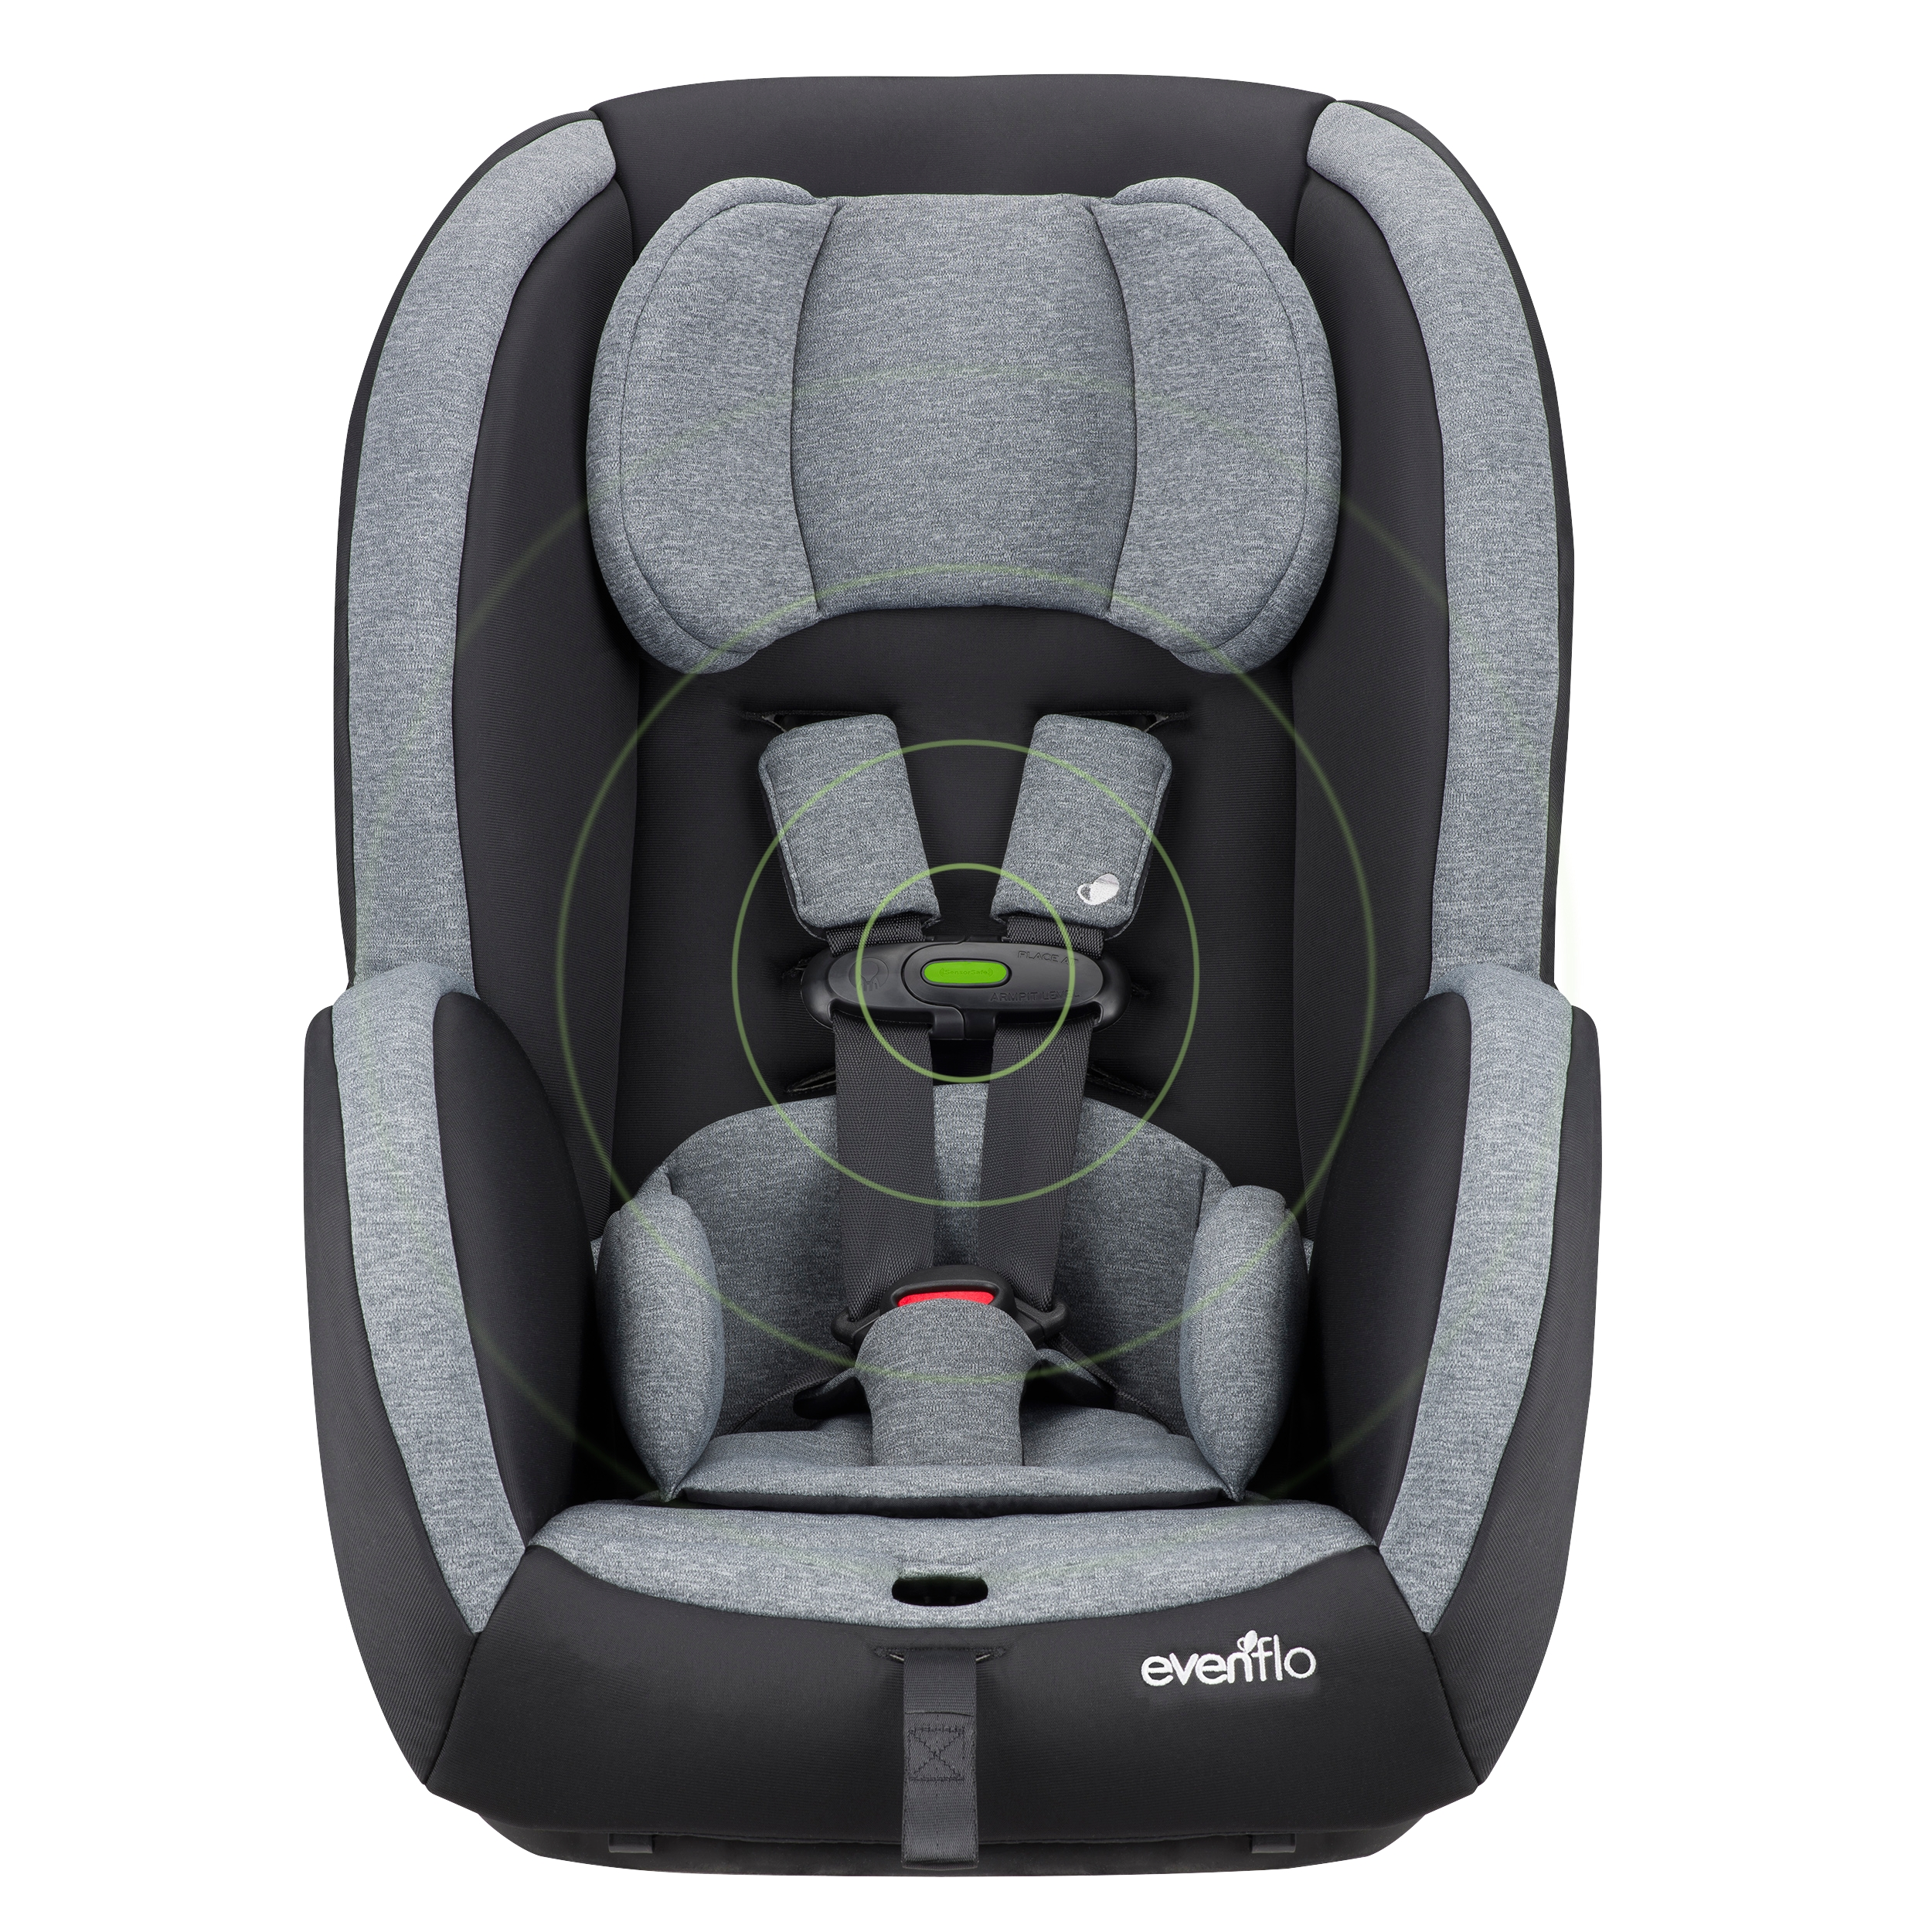 hight resolution of walmart and evenflo buckle up for safety and introduce new sensorsafe titan convertible car seat business wire